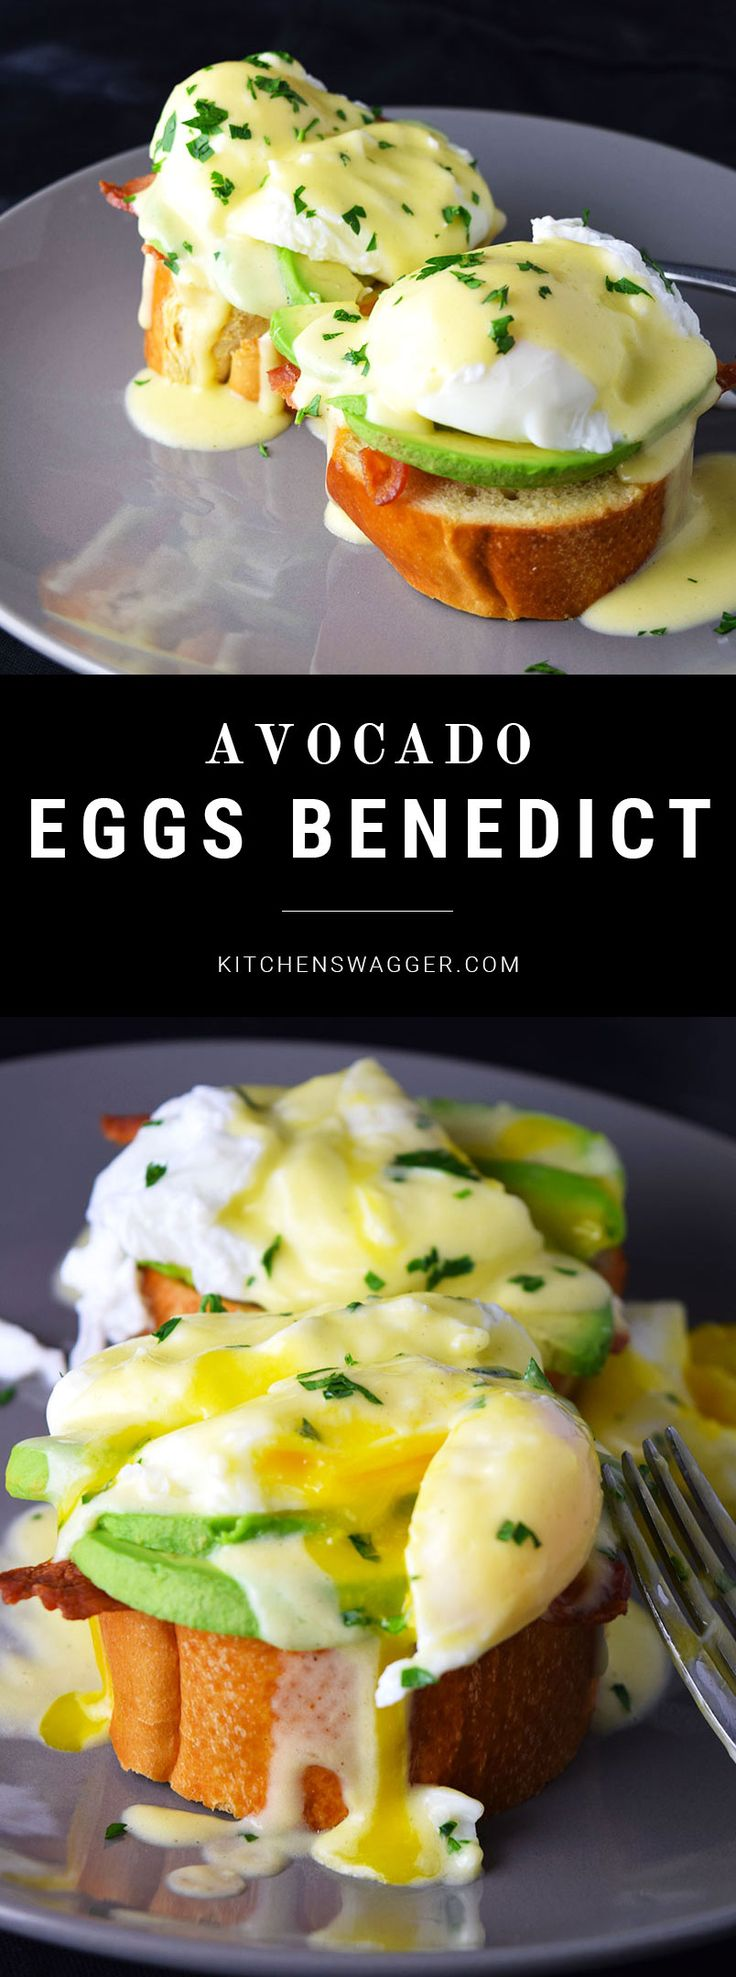 Delicious eggs benedict served on avocado slices, bacon, and french bread.  See more http://recipesheaven.com/paleo